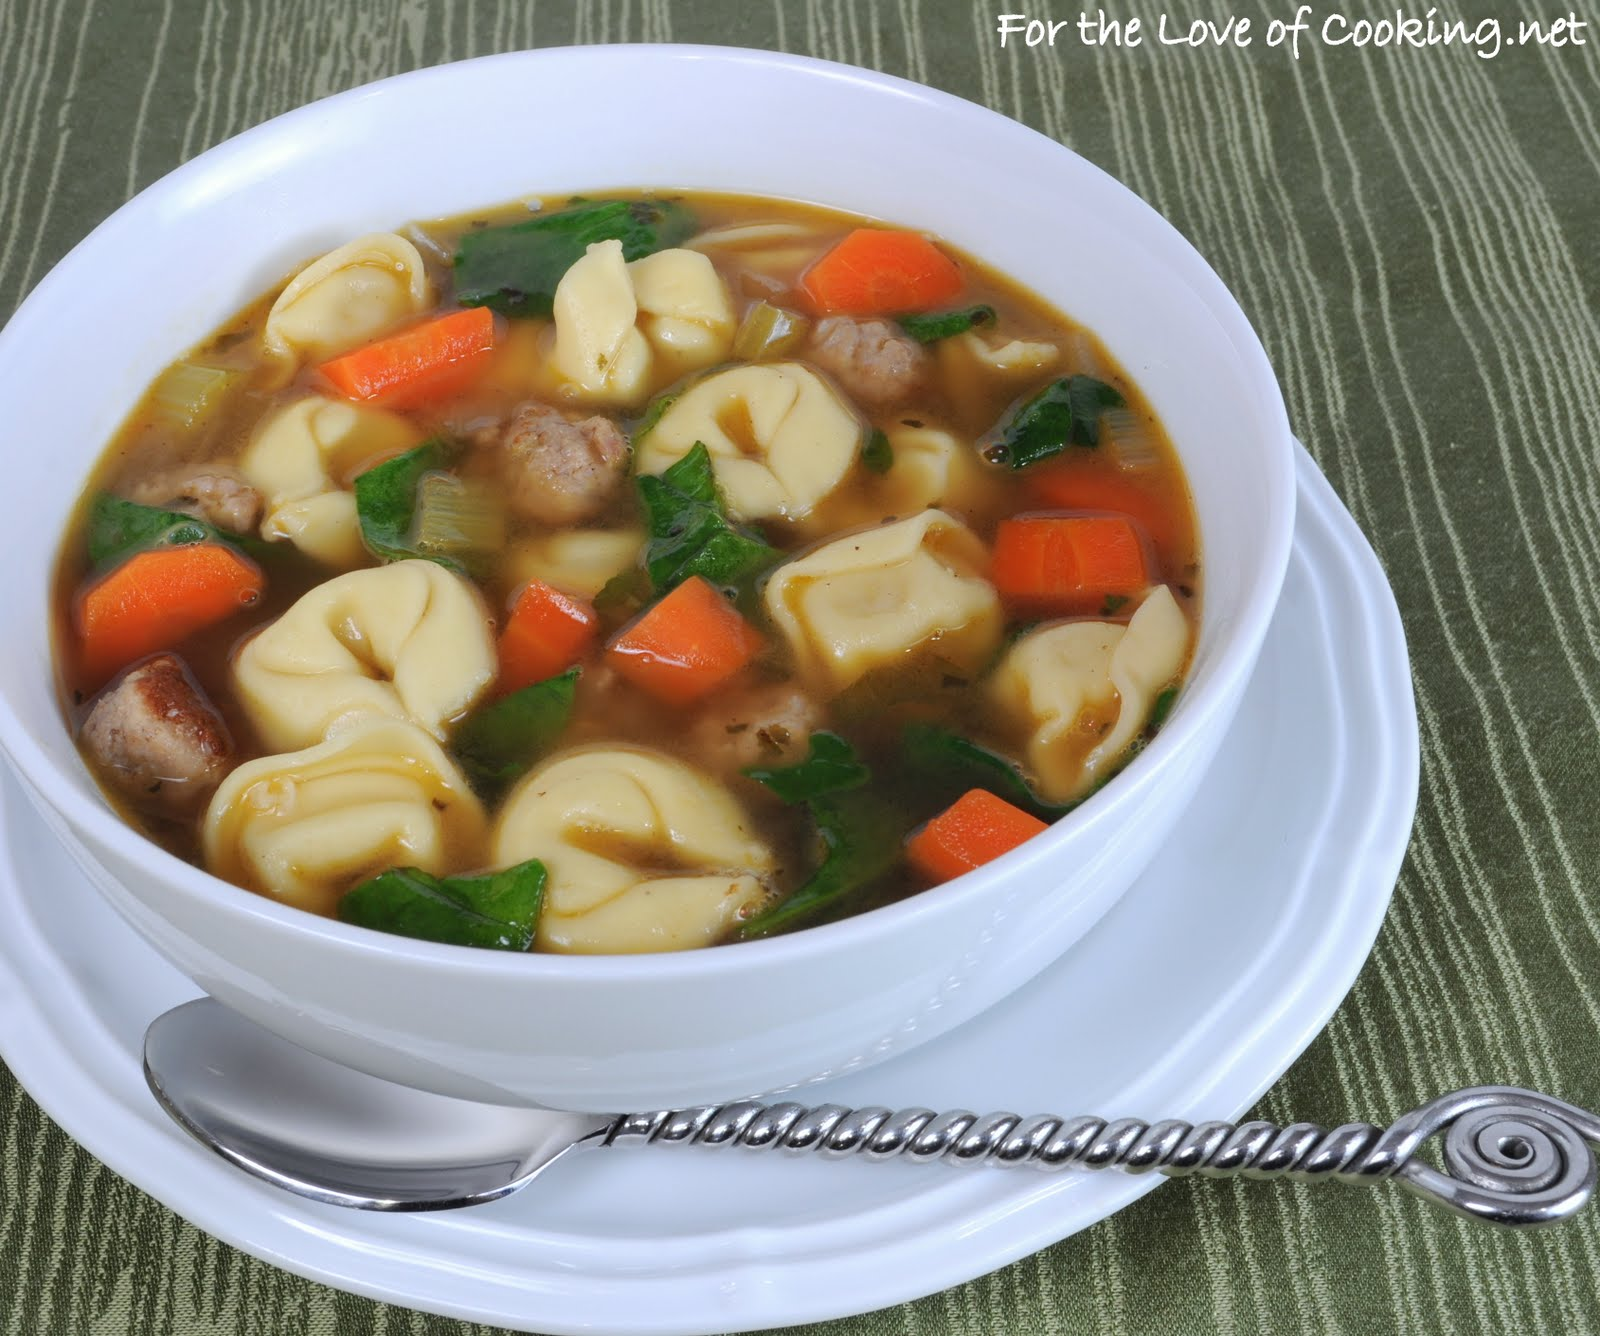 For The Love Of Cooking Turkey Italian Sausage And Cheese Tortellini Soup And GIVEAWAY WINNER